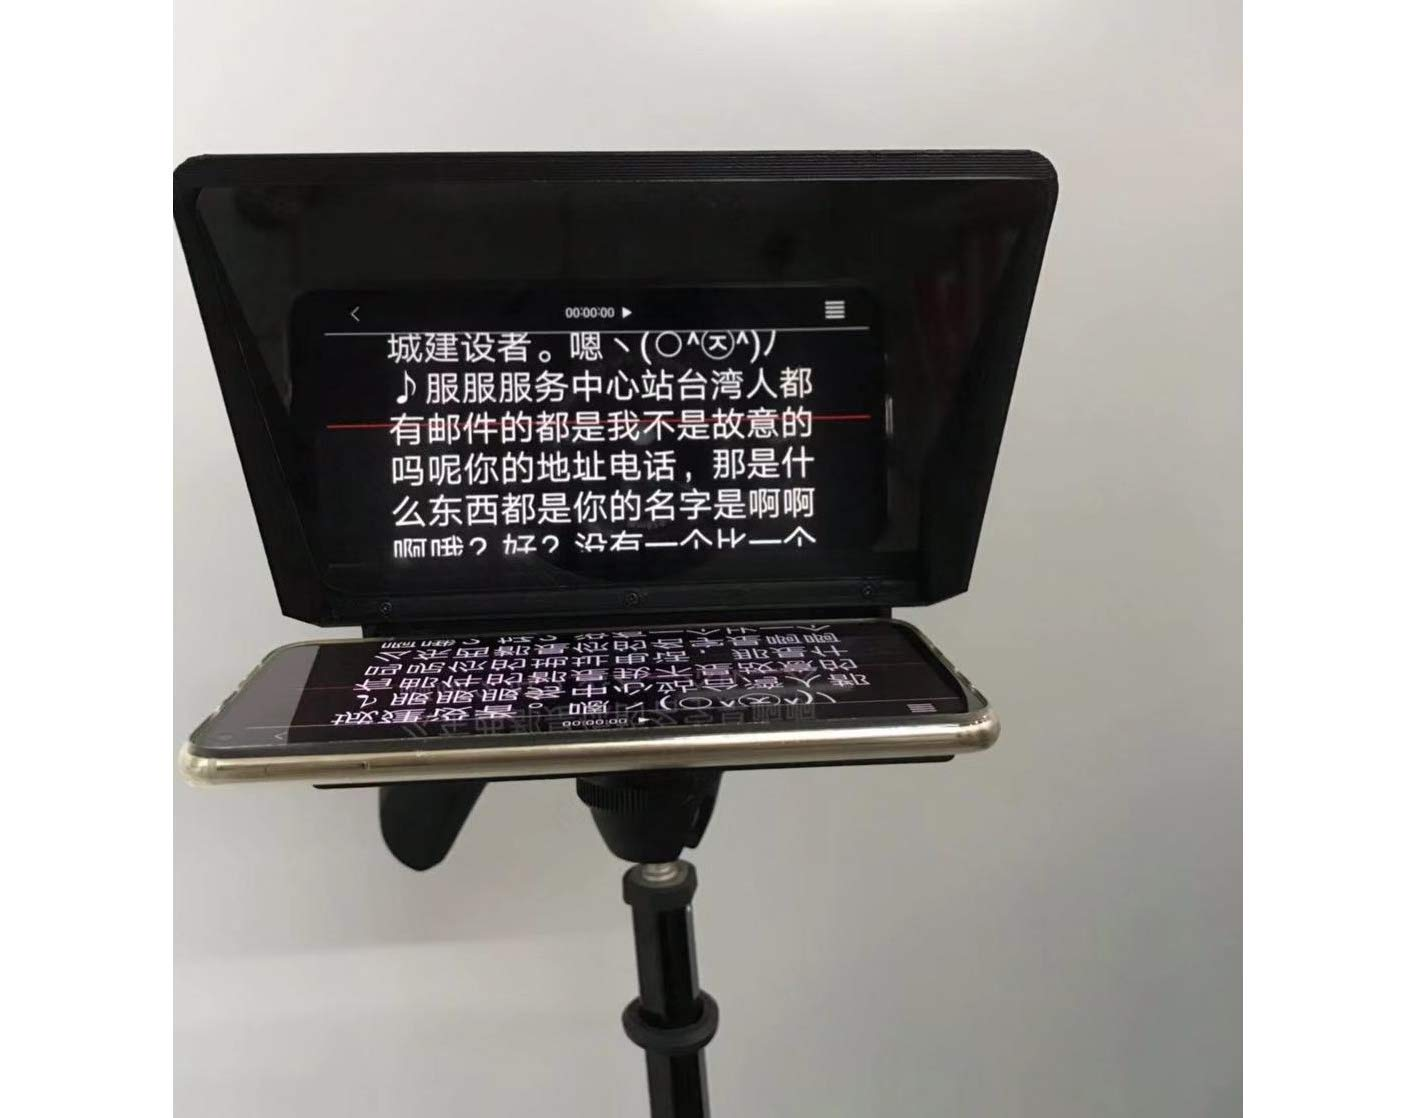 S18 - Teleprompter Portable Teleprompter for Smartphone with Remote Control Shooting by DV Camera and Smartphone